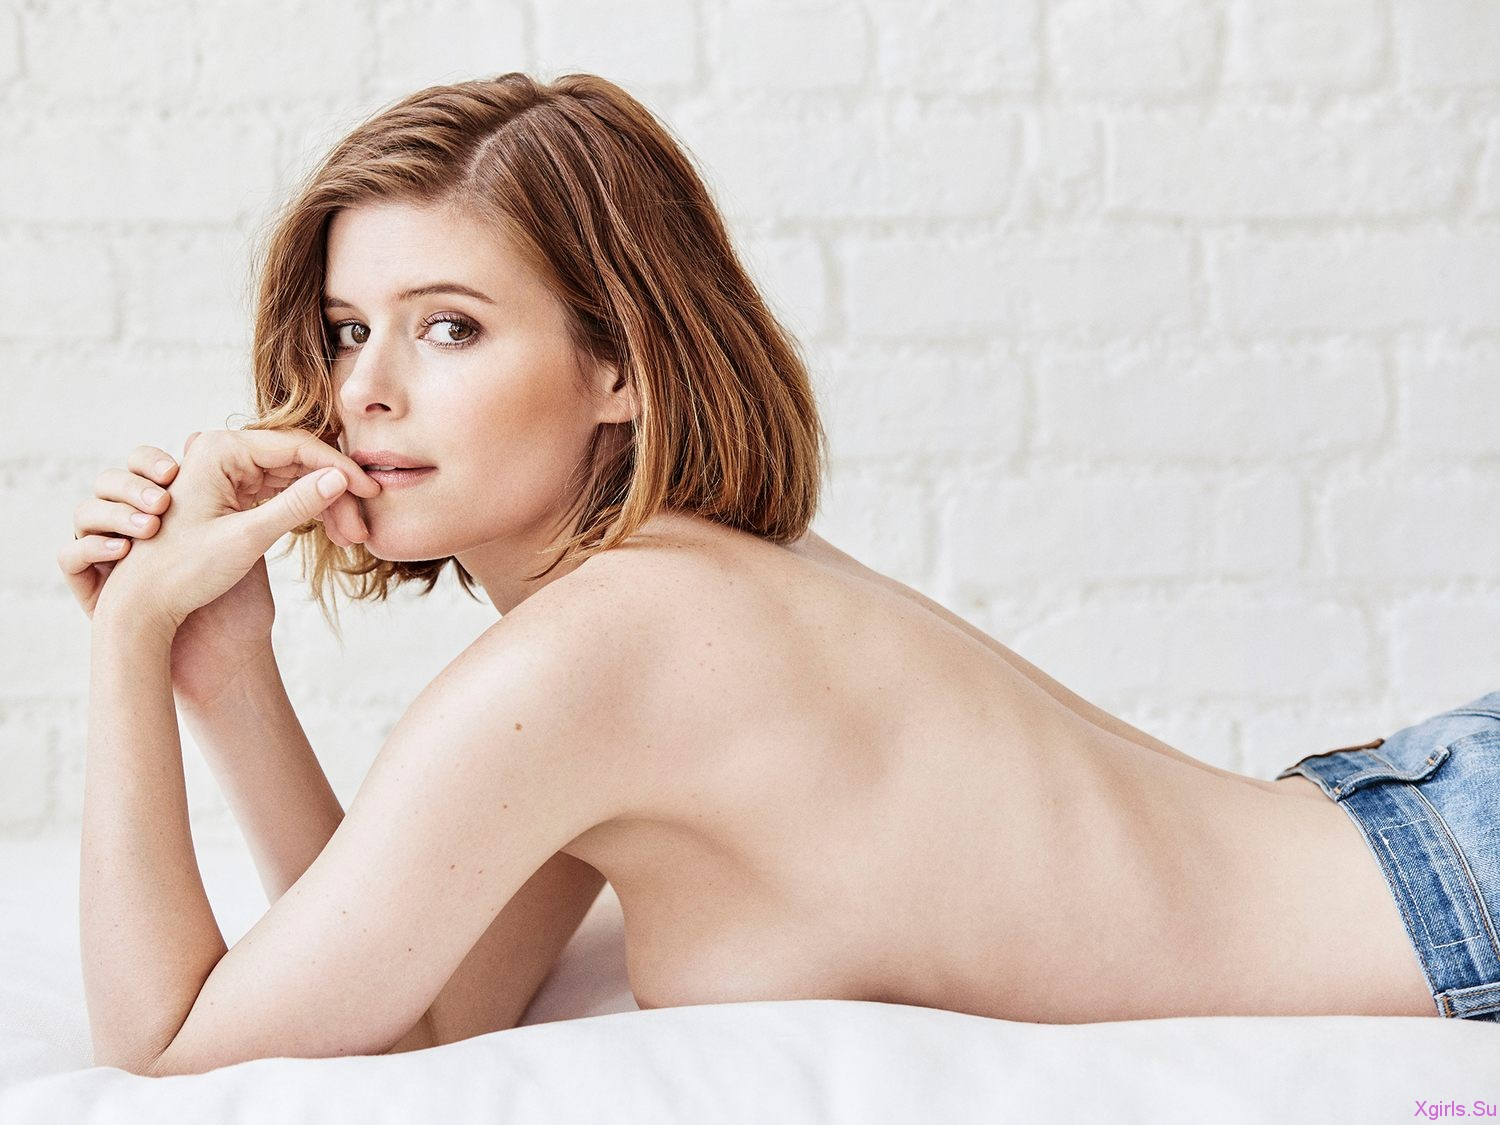 Kate Mara Nude Topless And Lesbian Sex With Ellen Page